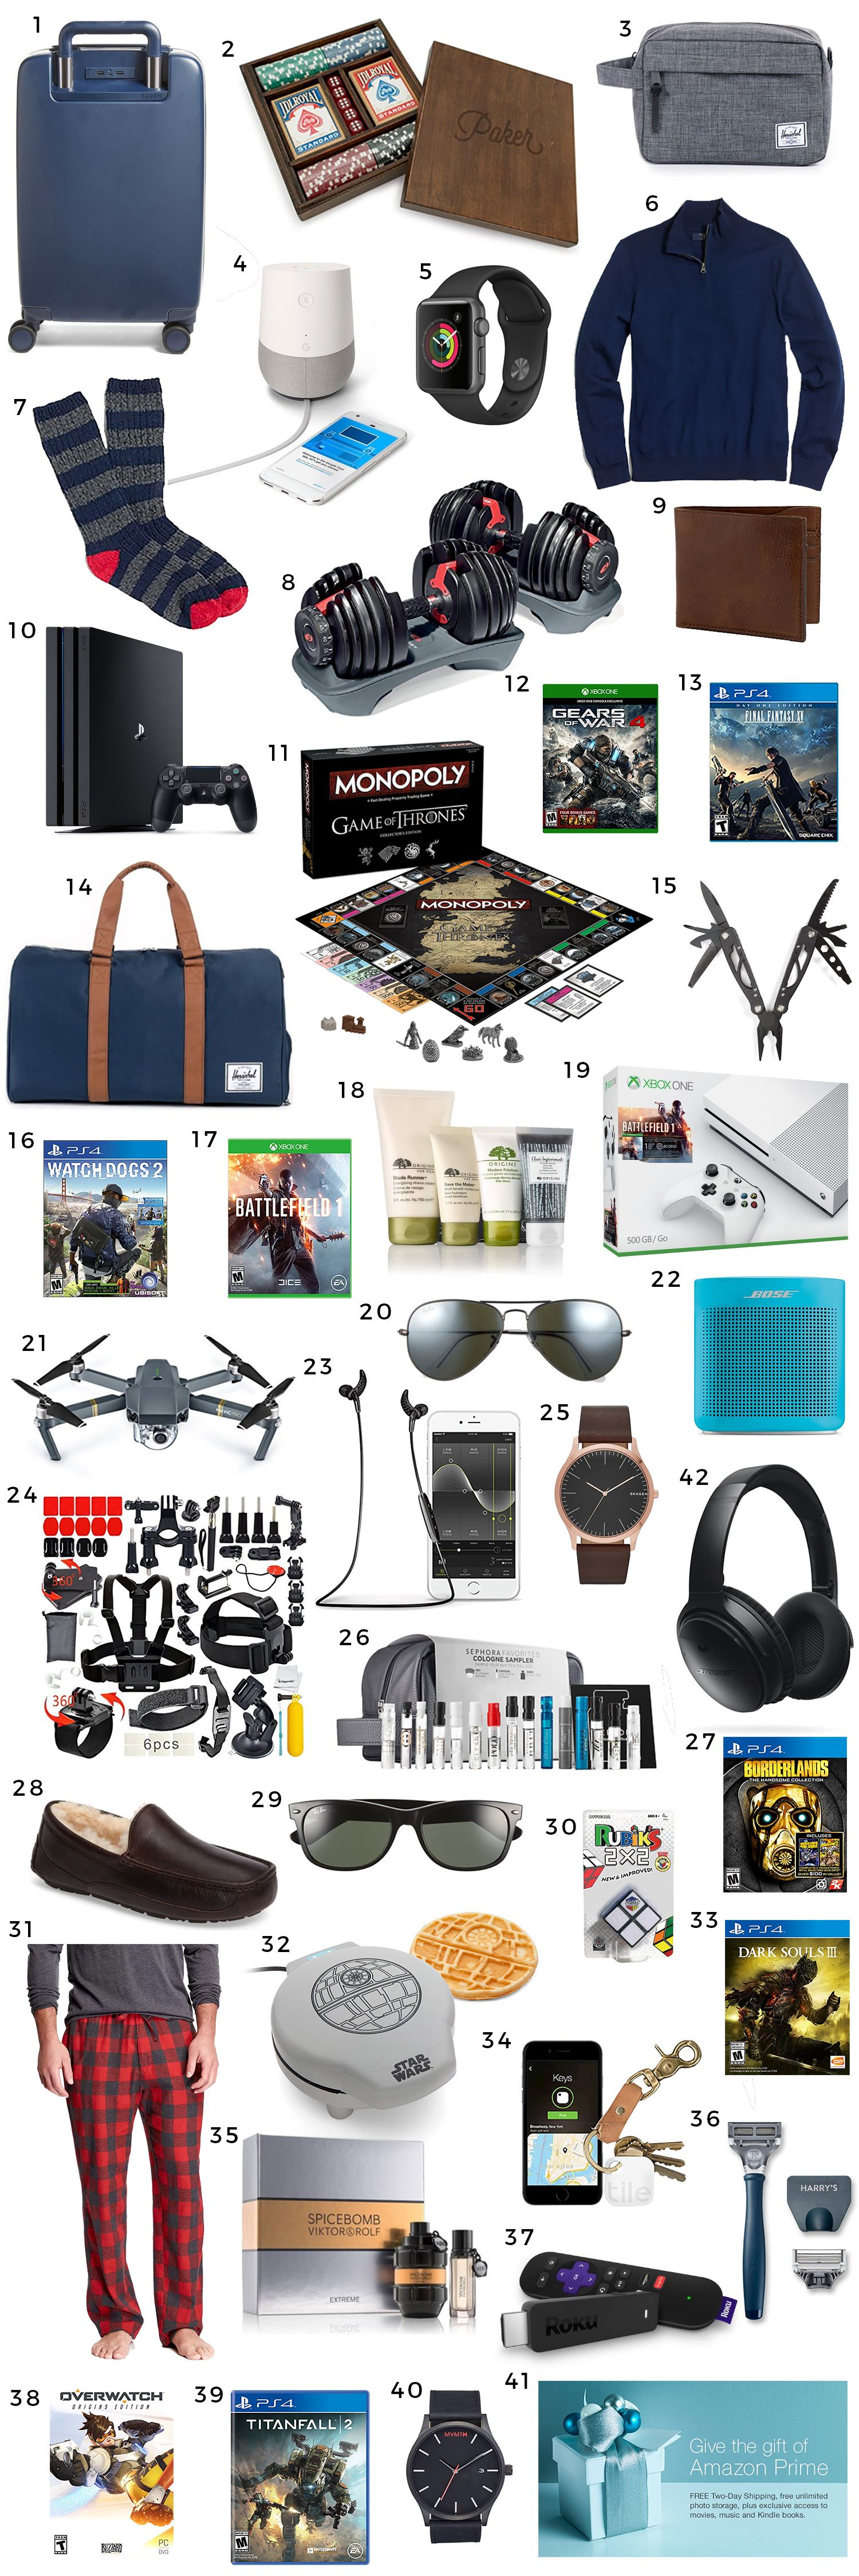 the best christmas gift ideas for men the ultimate christmas gift guide for men filled with tons of unique christmas gift ideas by orlando